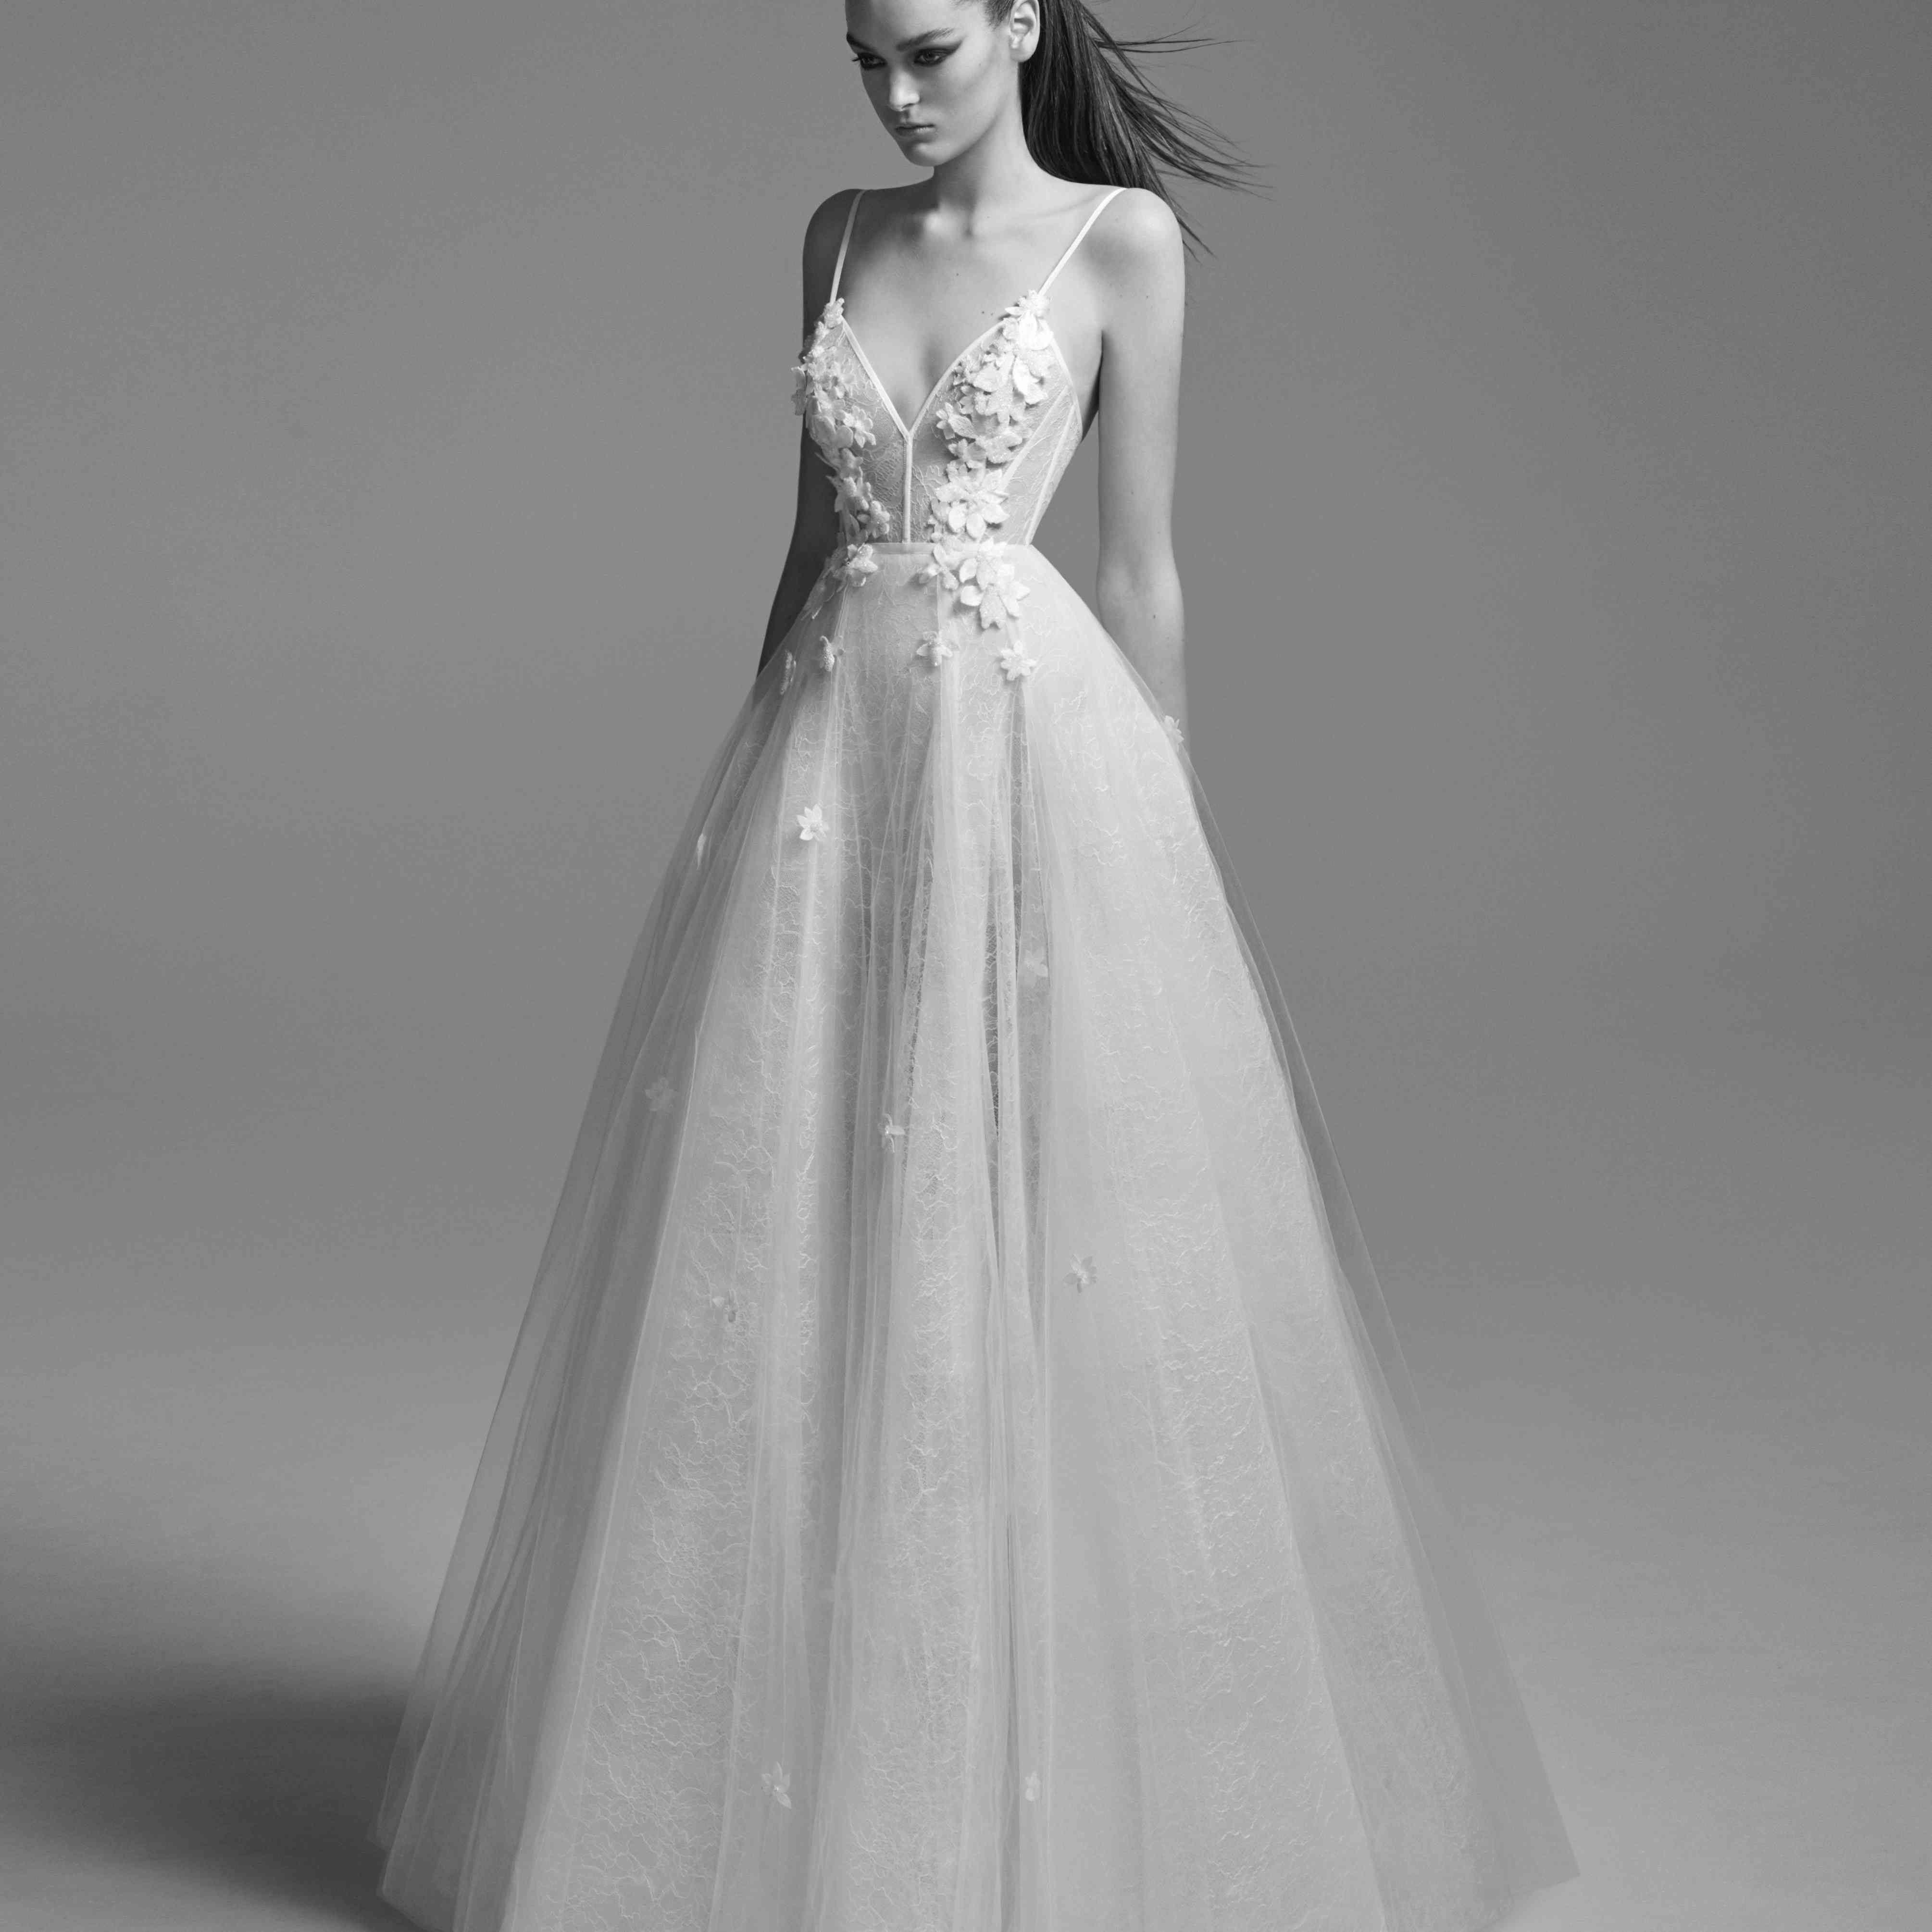 Alex Perry Wedding Gowns: 8 Wedding Dress Designers You Don't Know But Need To